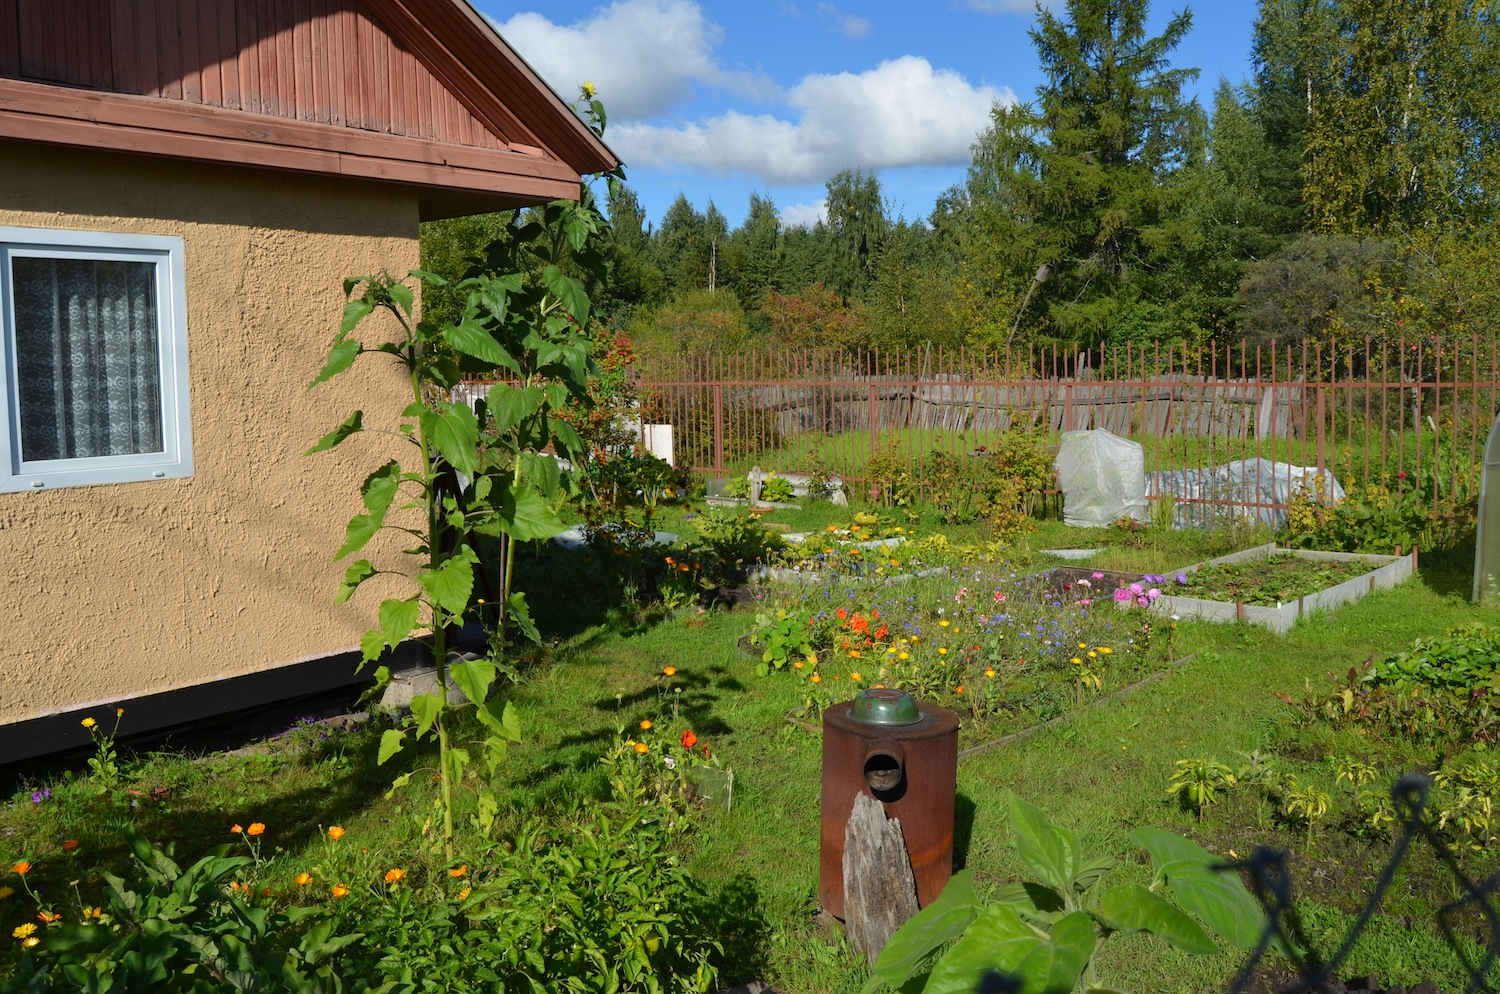 We bring to life ideas for the garden and dacha with our own hands